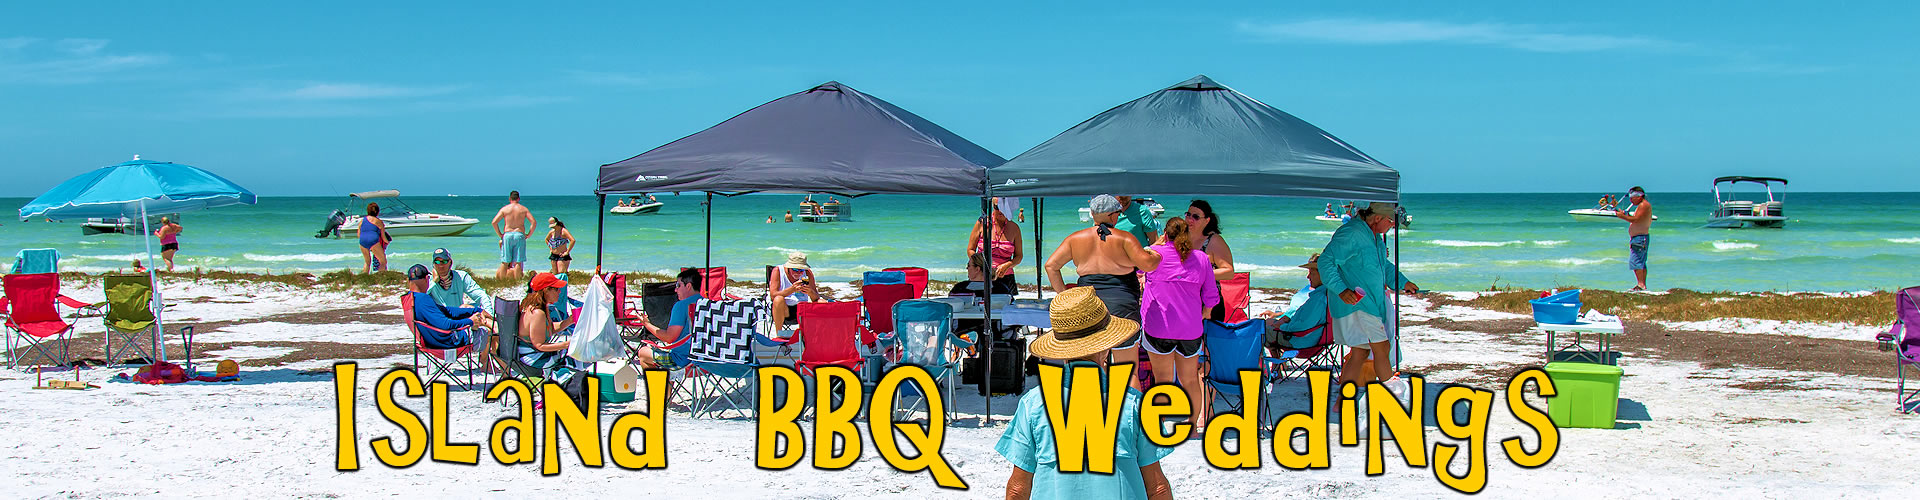 Beach BBQ Weddings Tampa